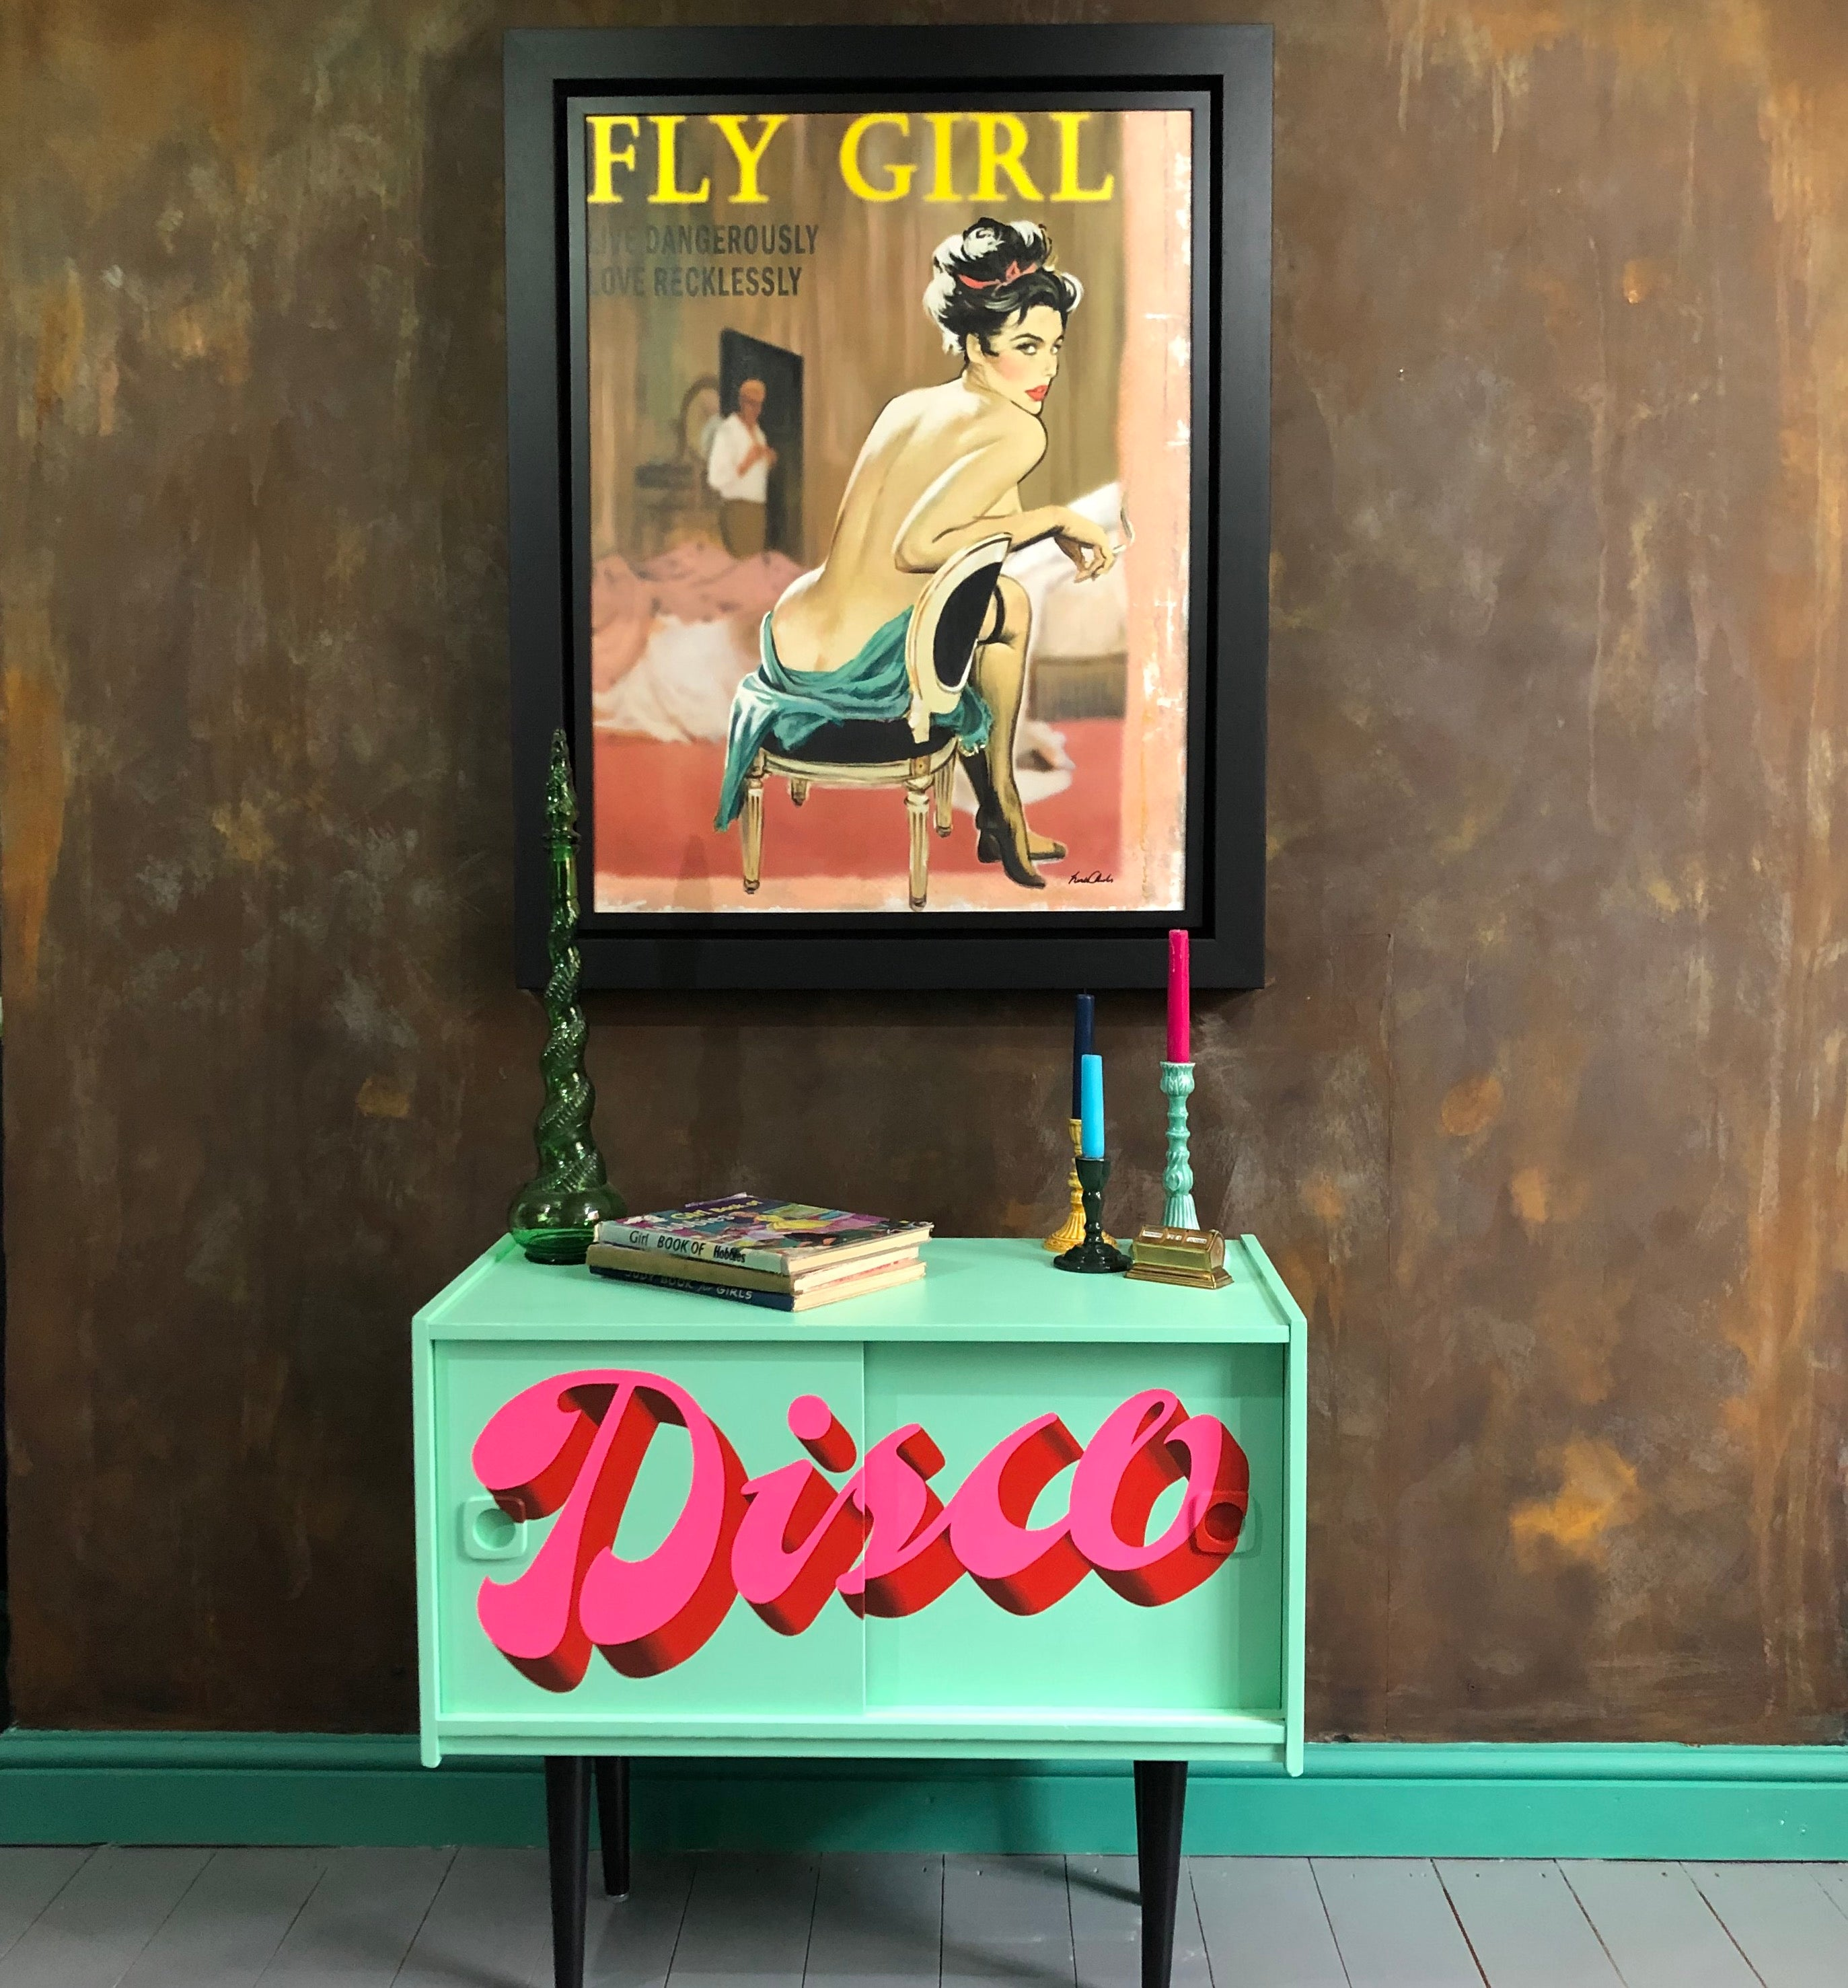 Fly Girl by Linda Charles